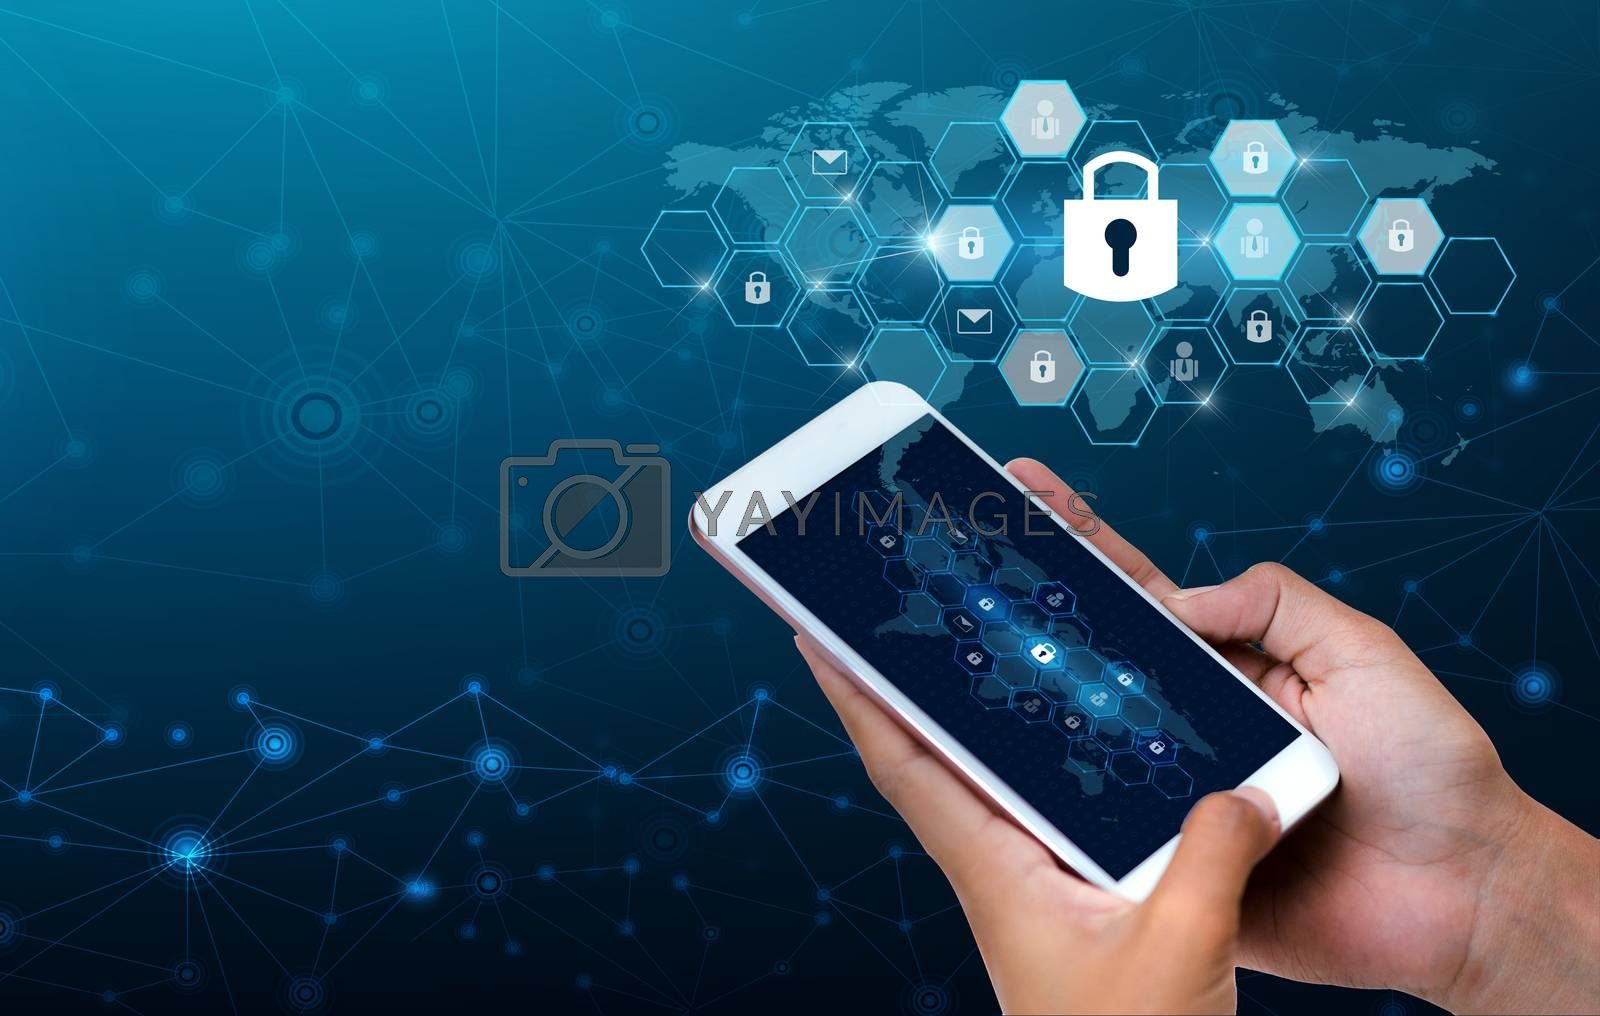 Unlocked smartphone lock Internet phone hand Businesspeople press the phone to communicate in the Internet. Cyber security concept hand protection network with lock icon and virtual screens Space put message Blue tone by Sarayut